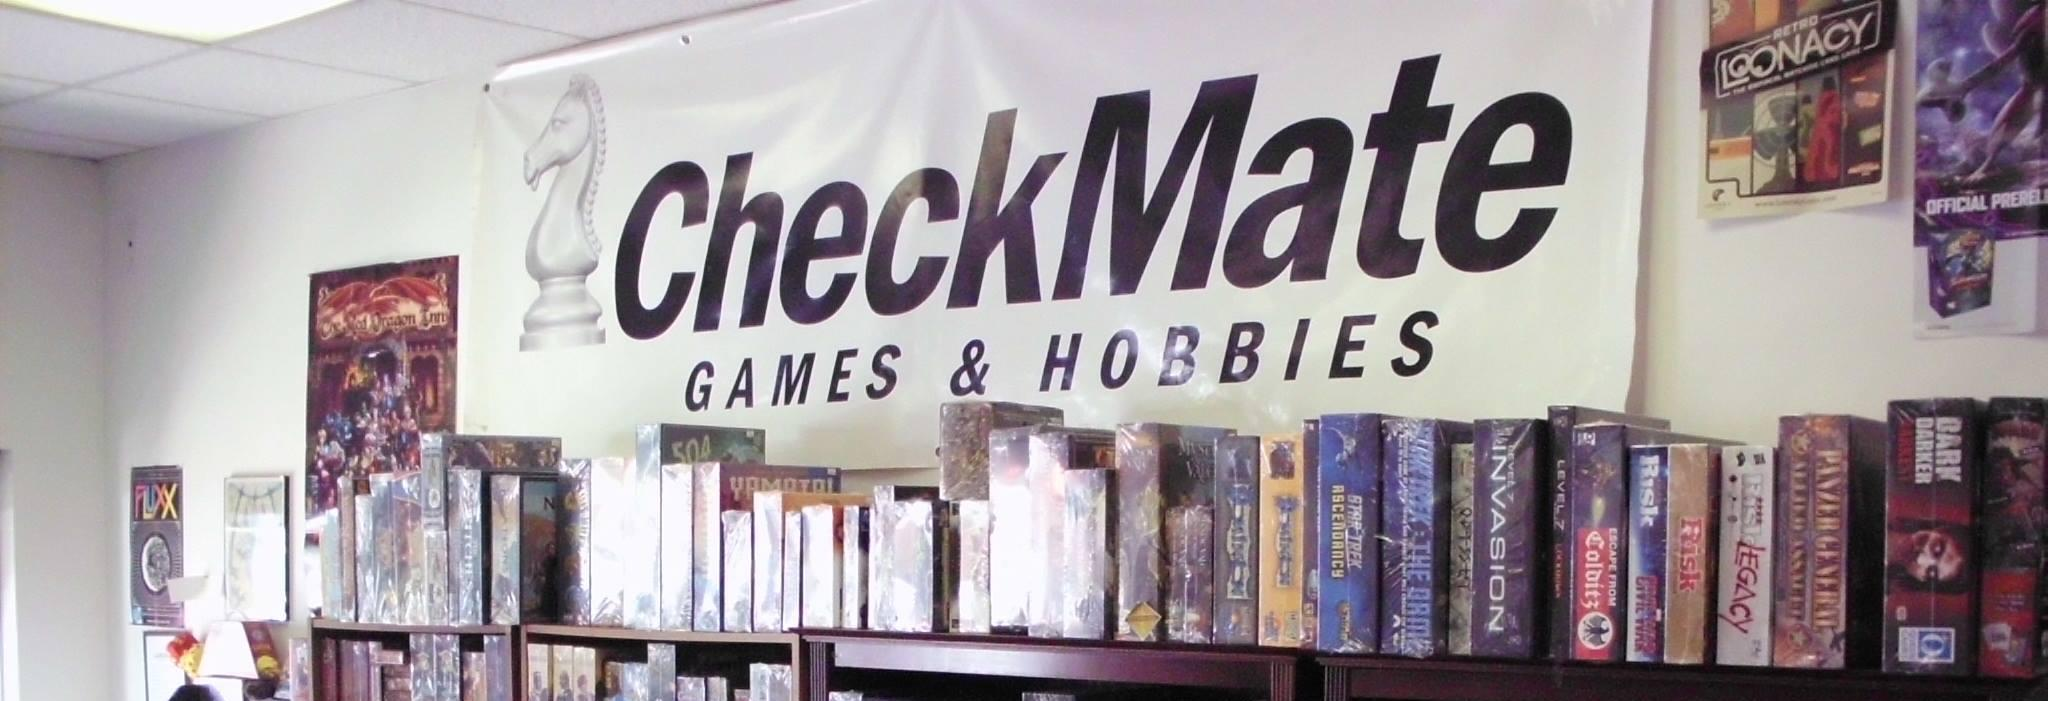 checkmate games and hobbies